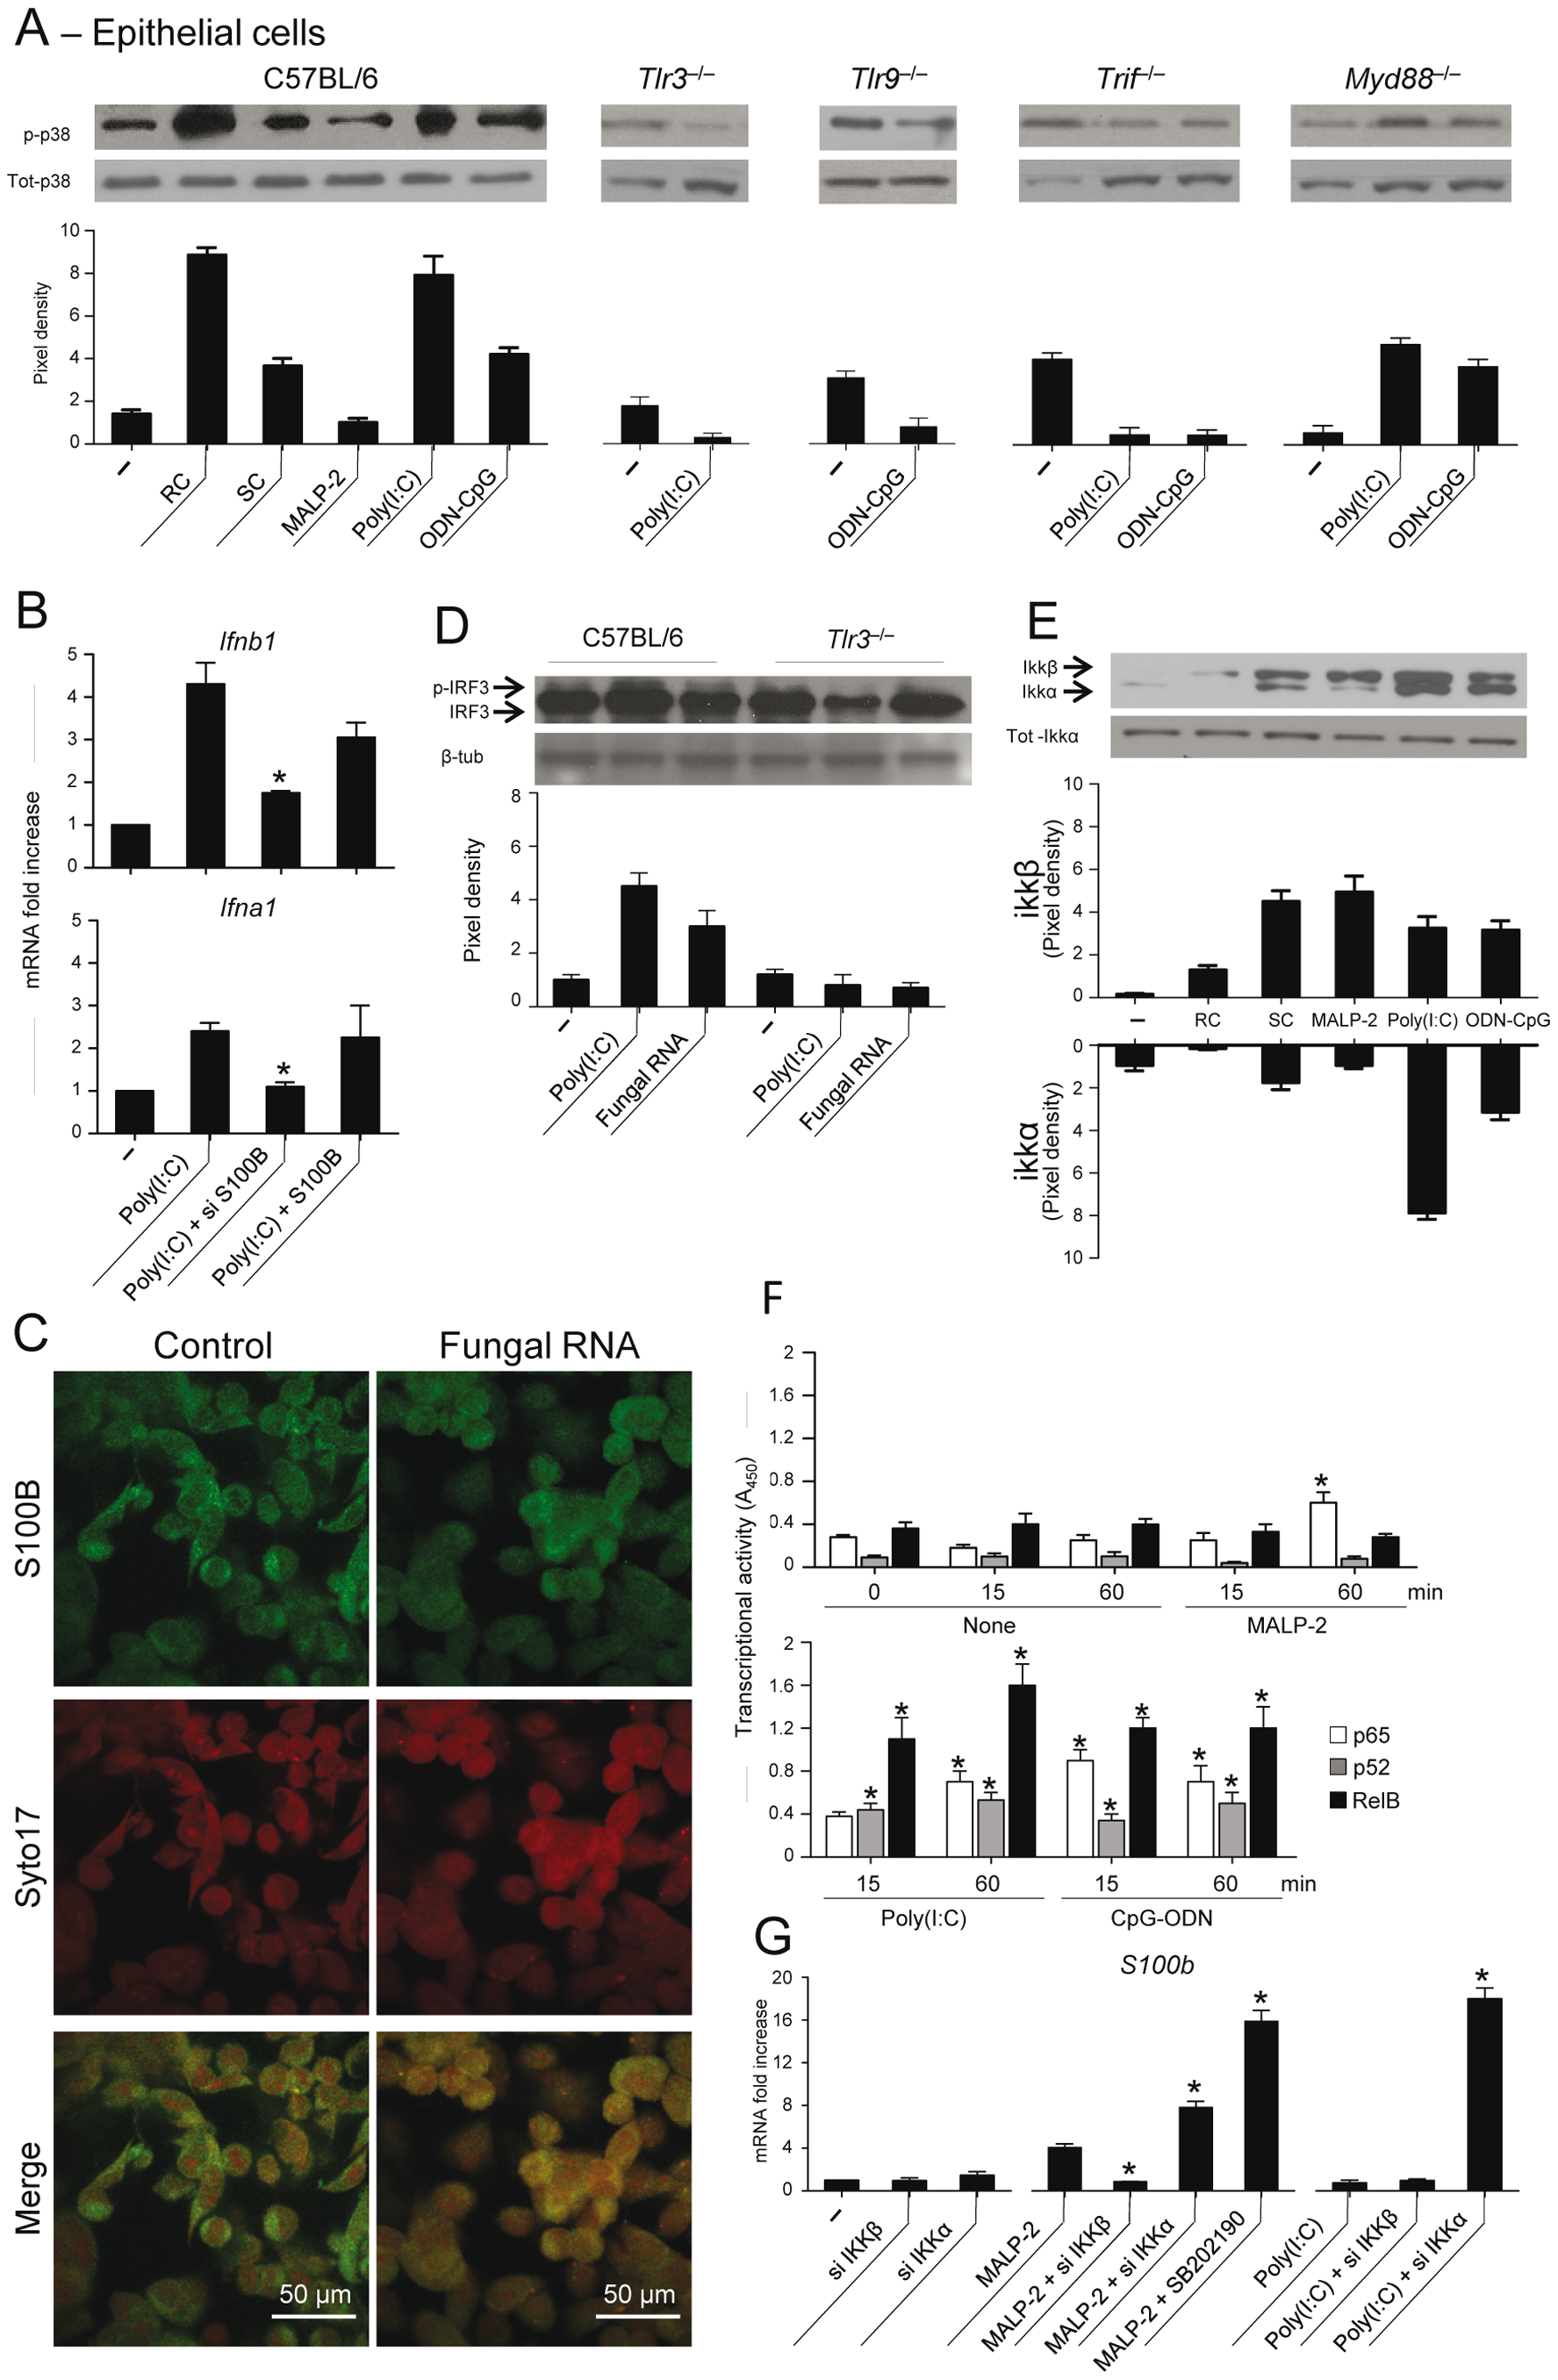 TLR3 and TLR9 inhibit <i>s100b</i> expression via TRIF/noncanonical NF–κB.